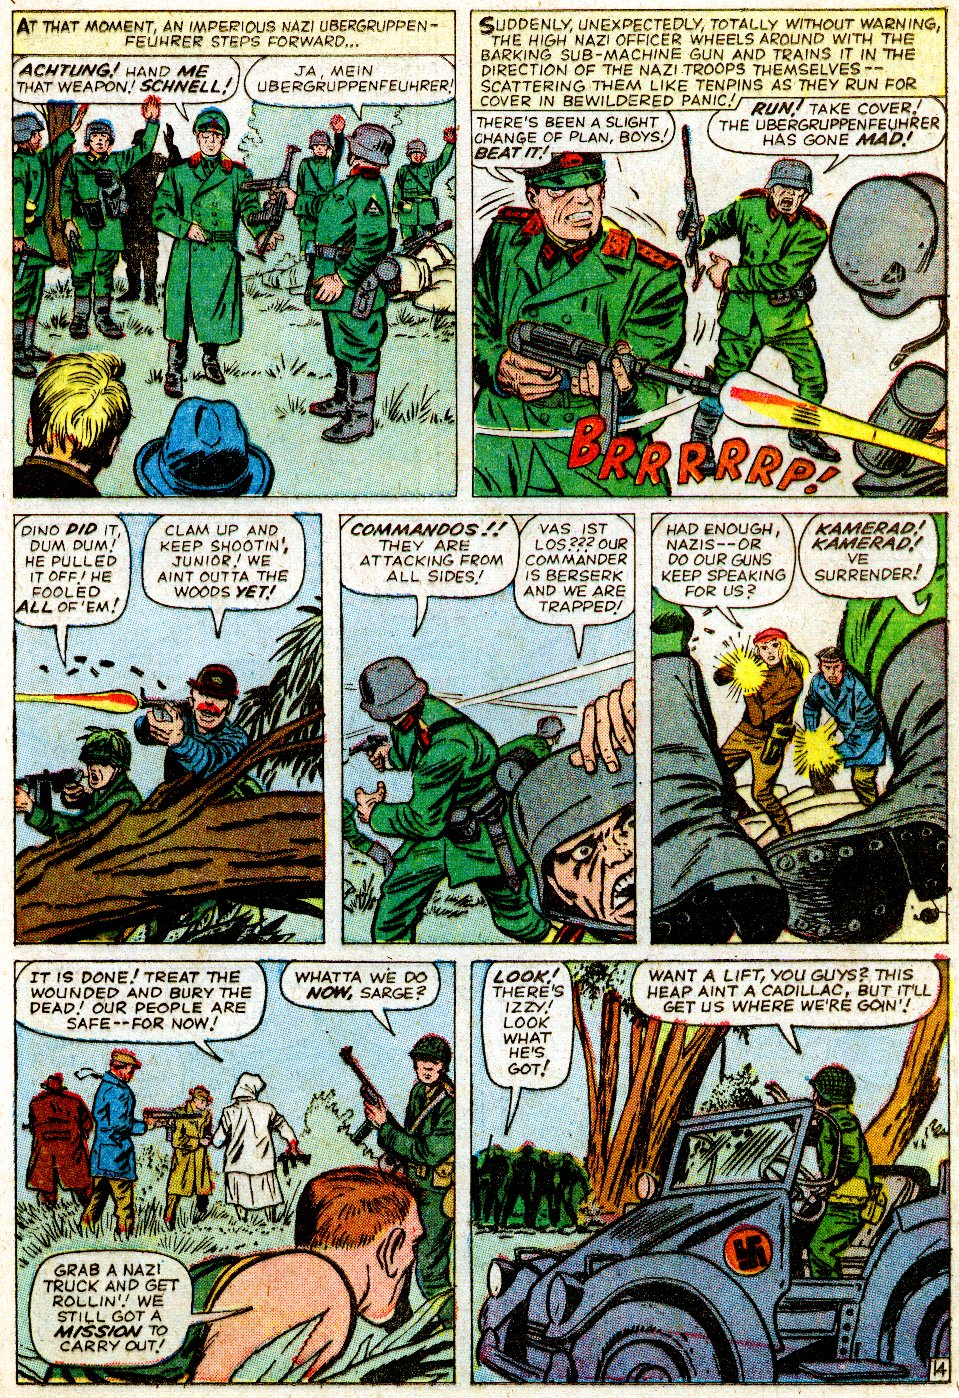 Read online Sgt. Fury comic -  Issue #1 - 21